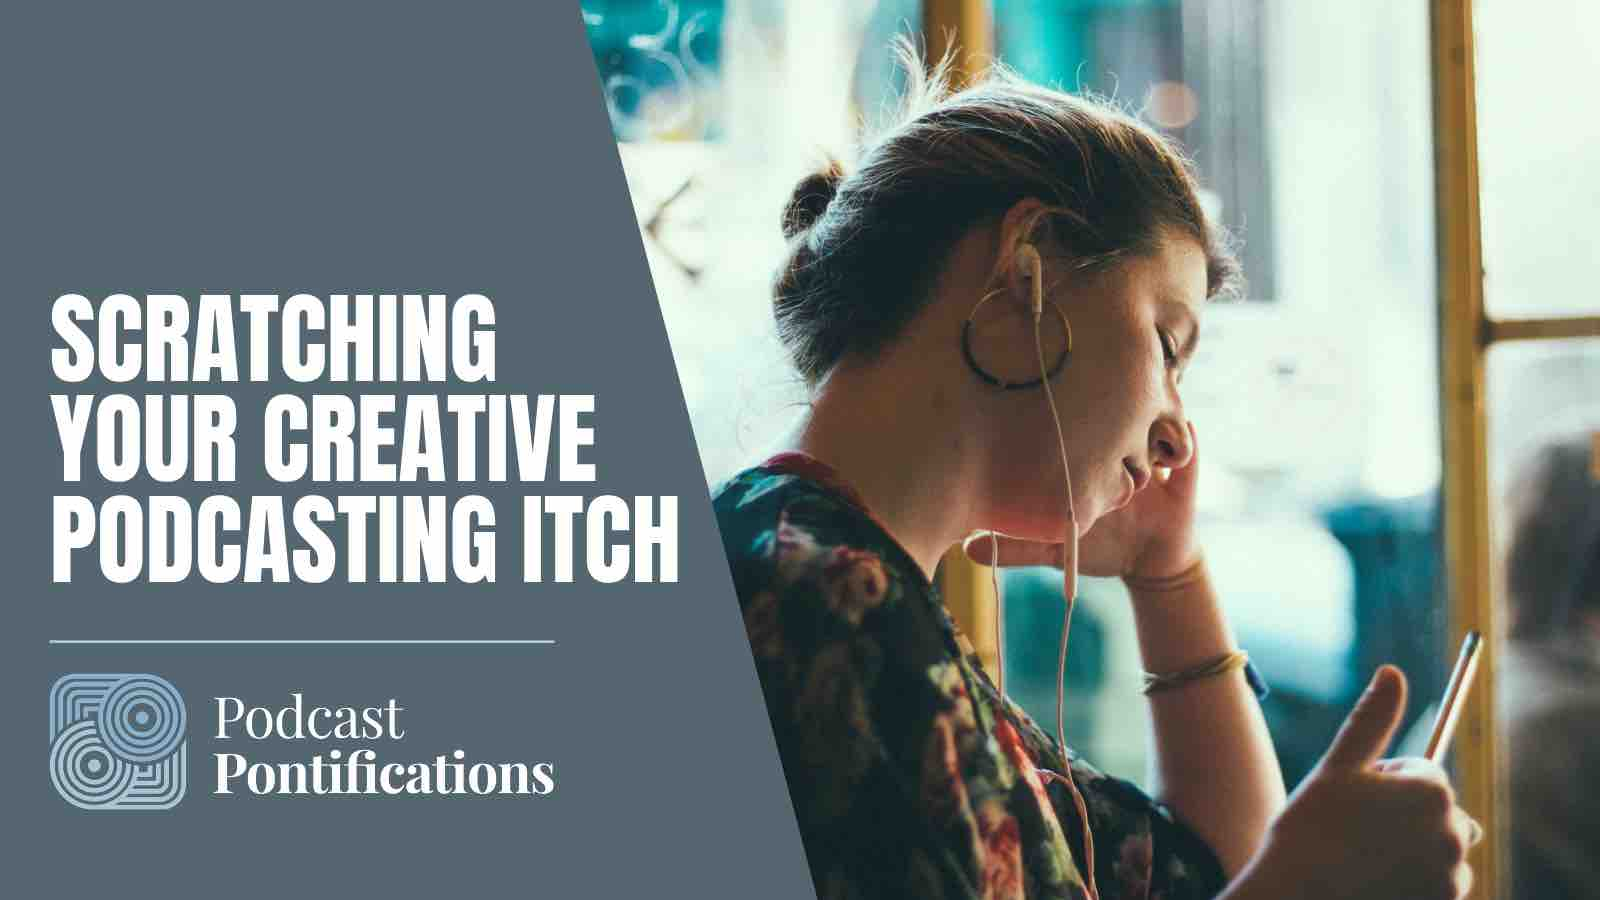 Scratching Your Creative Podcasting Itch